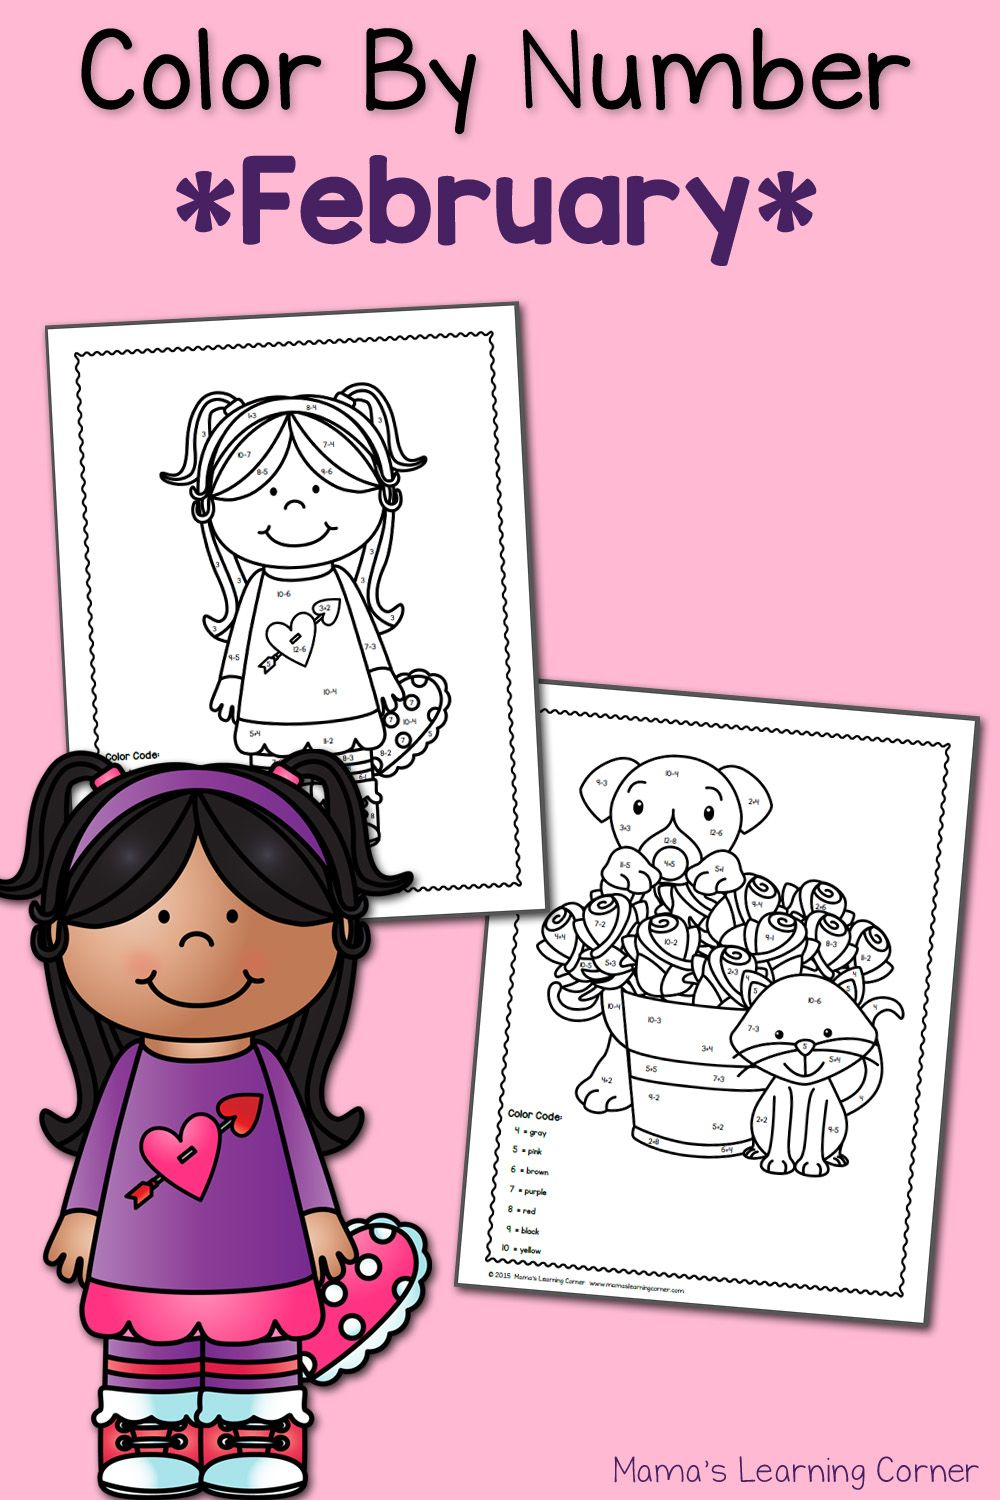 Color By Number Worksheets: February! | Valentine\'s Day | Pinterest ...